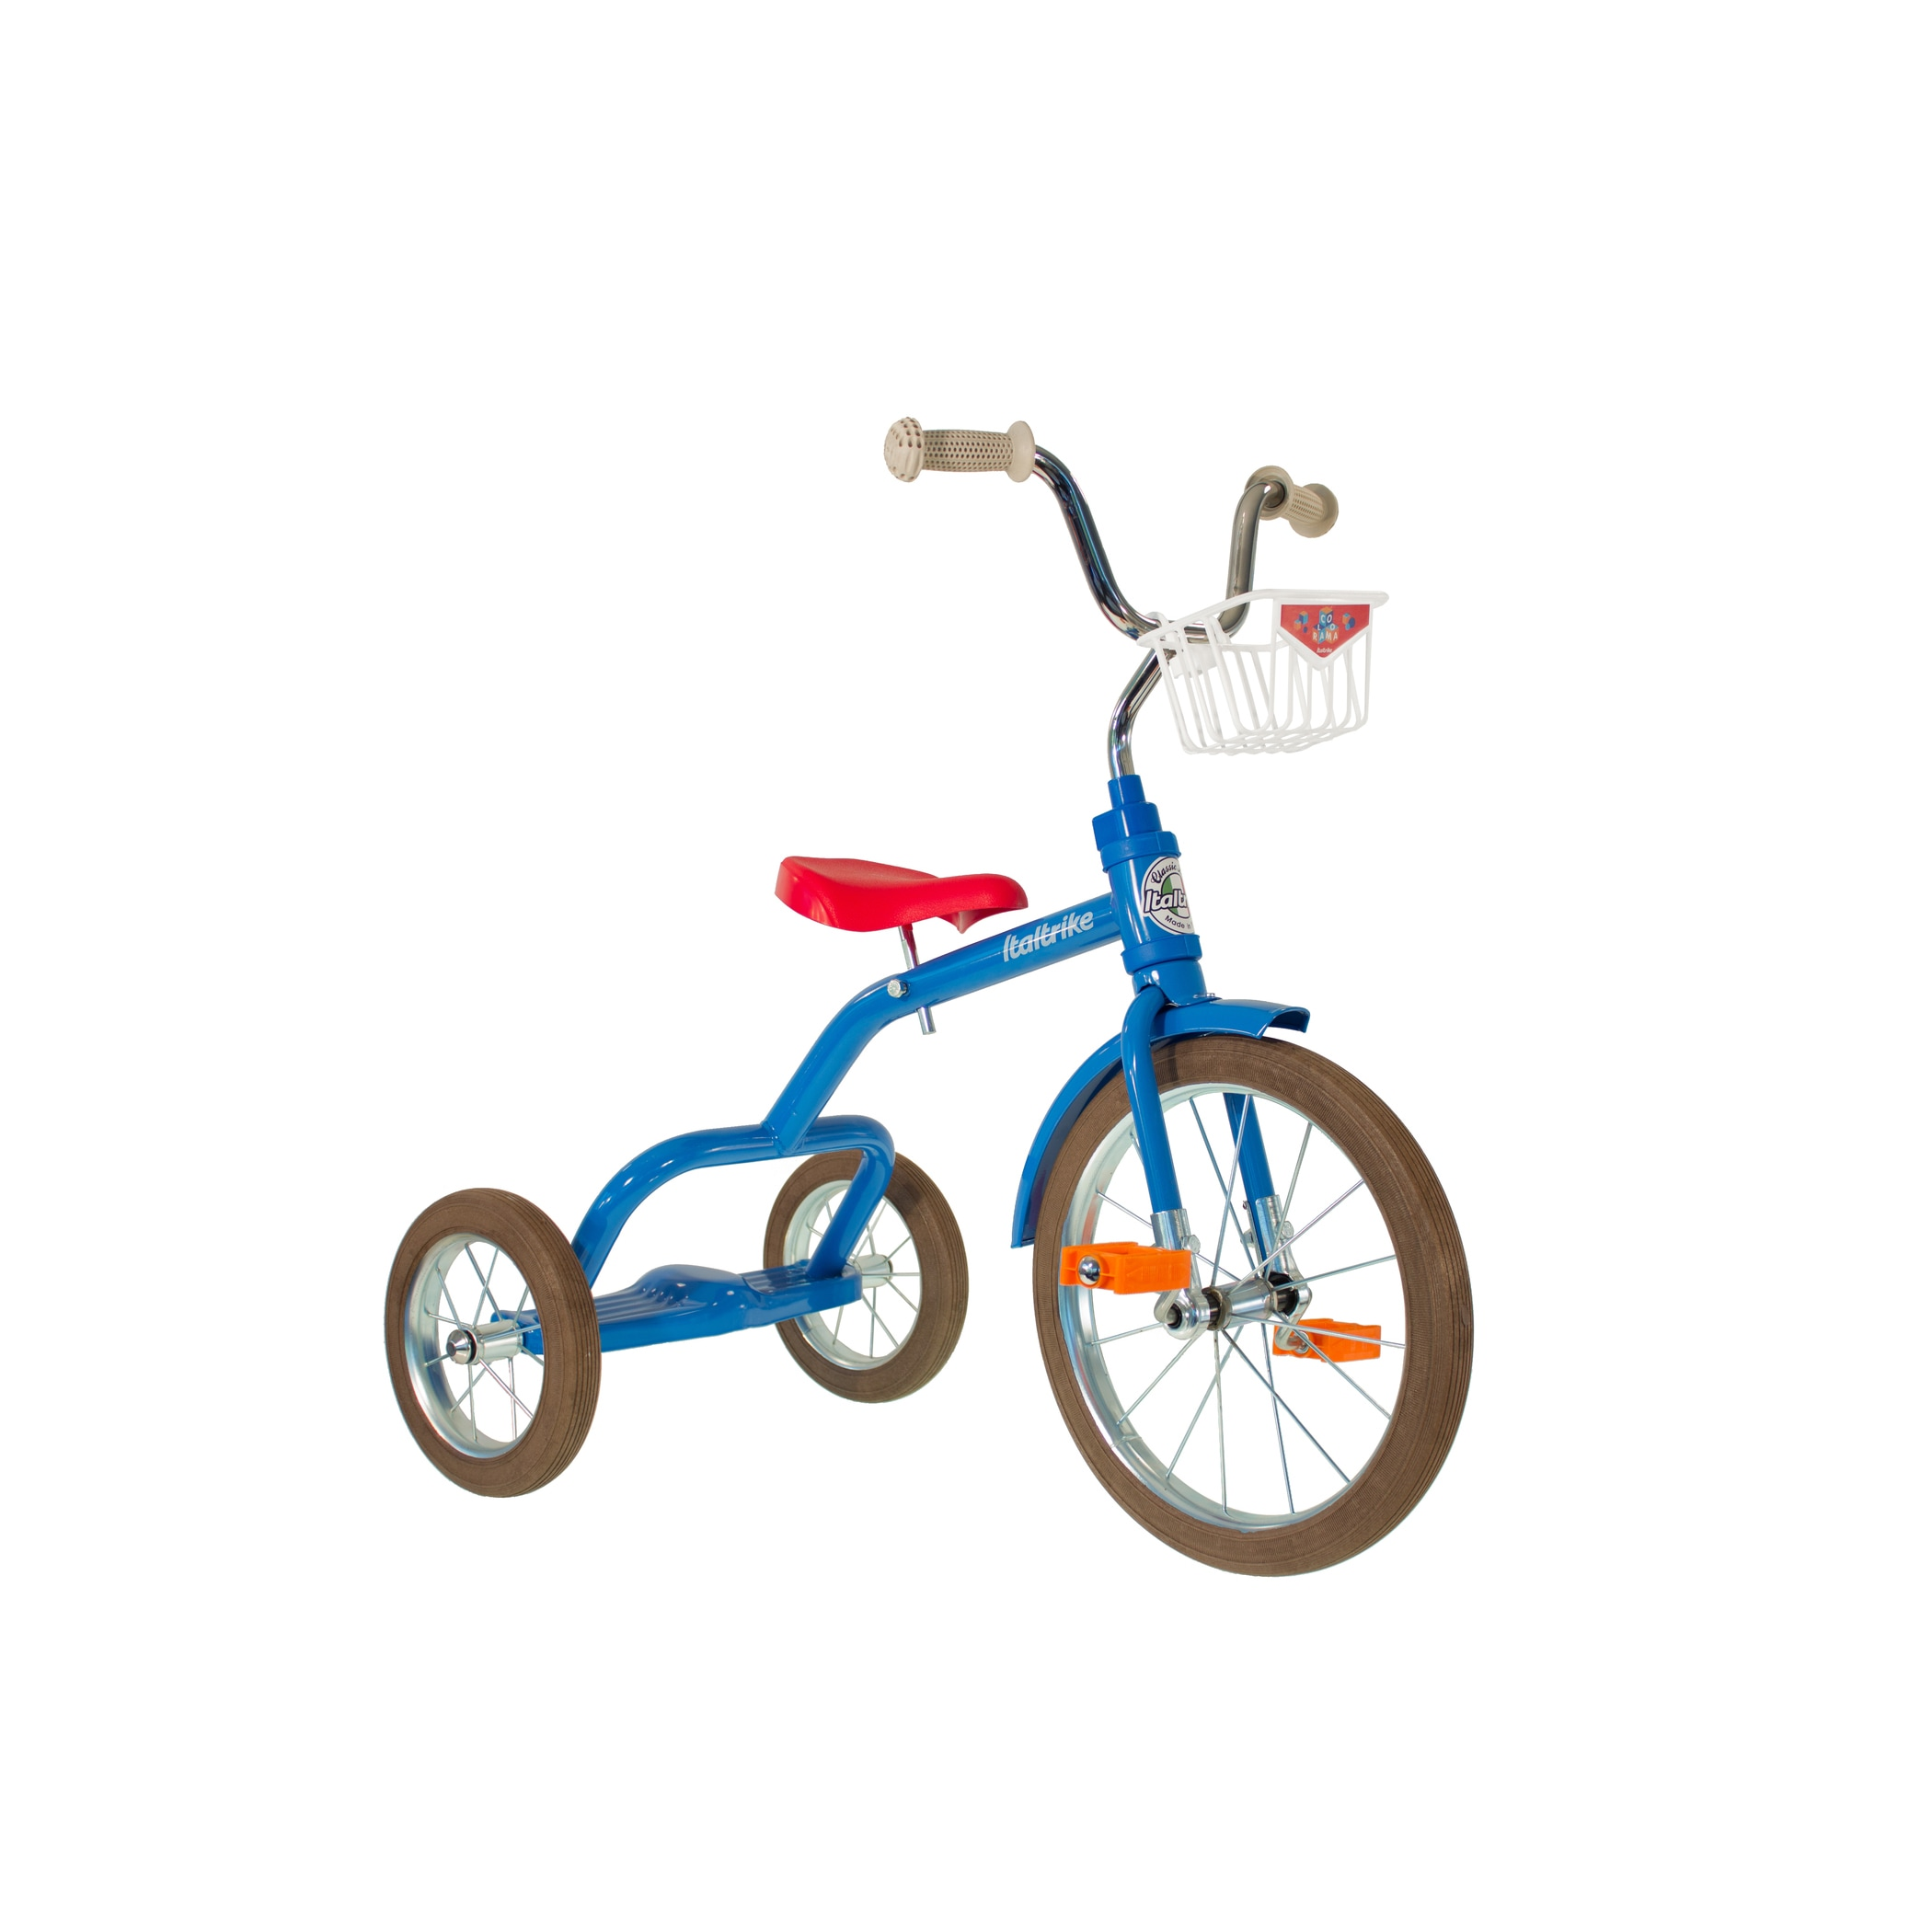 Italtrike 16 in. Spoke Colorama Tricycle - 8218BLUE